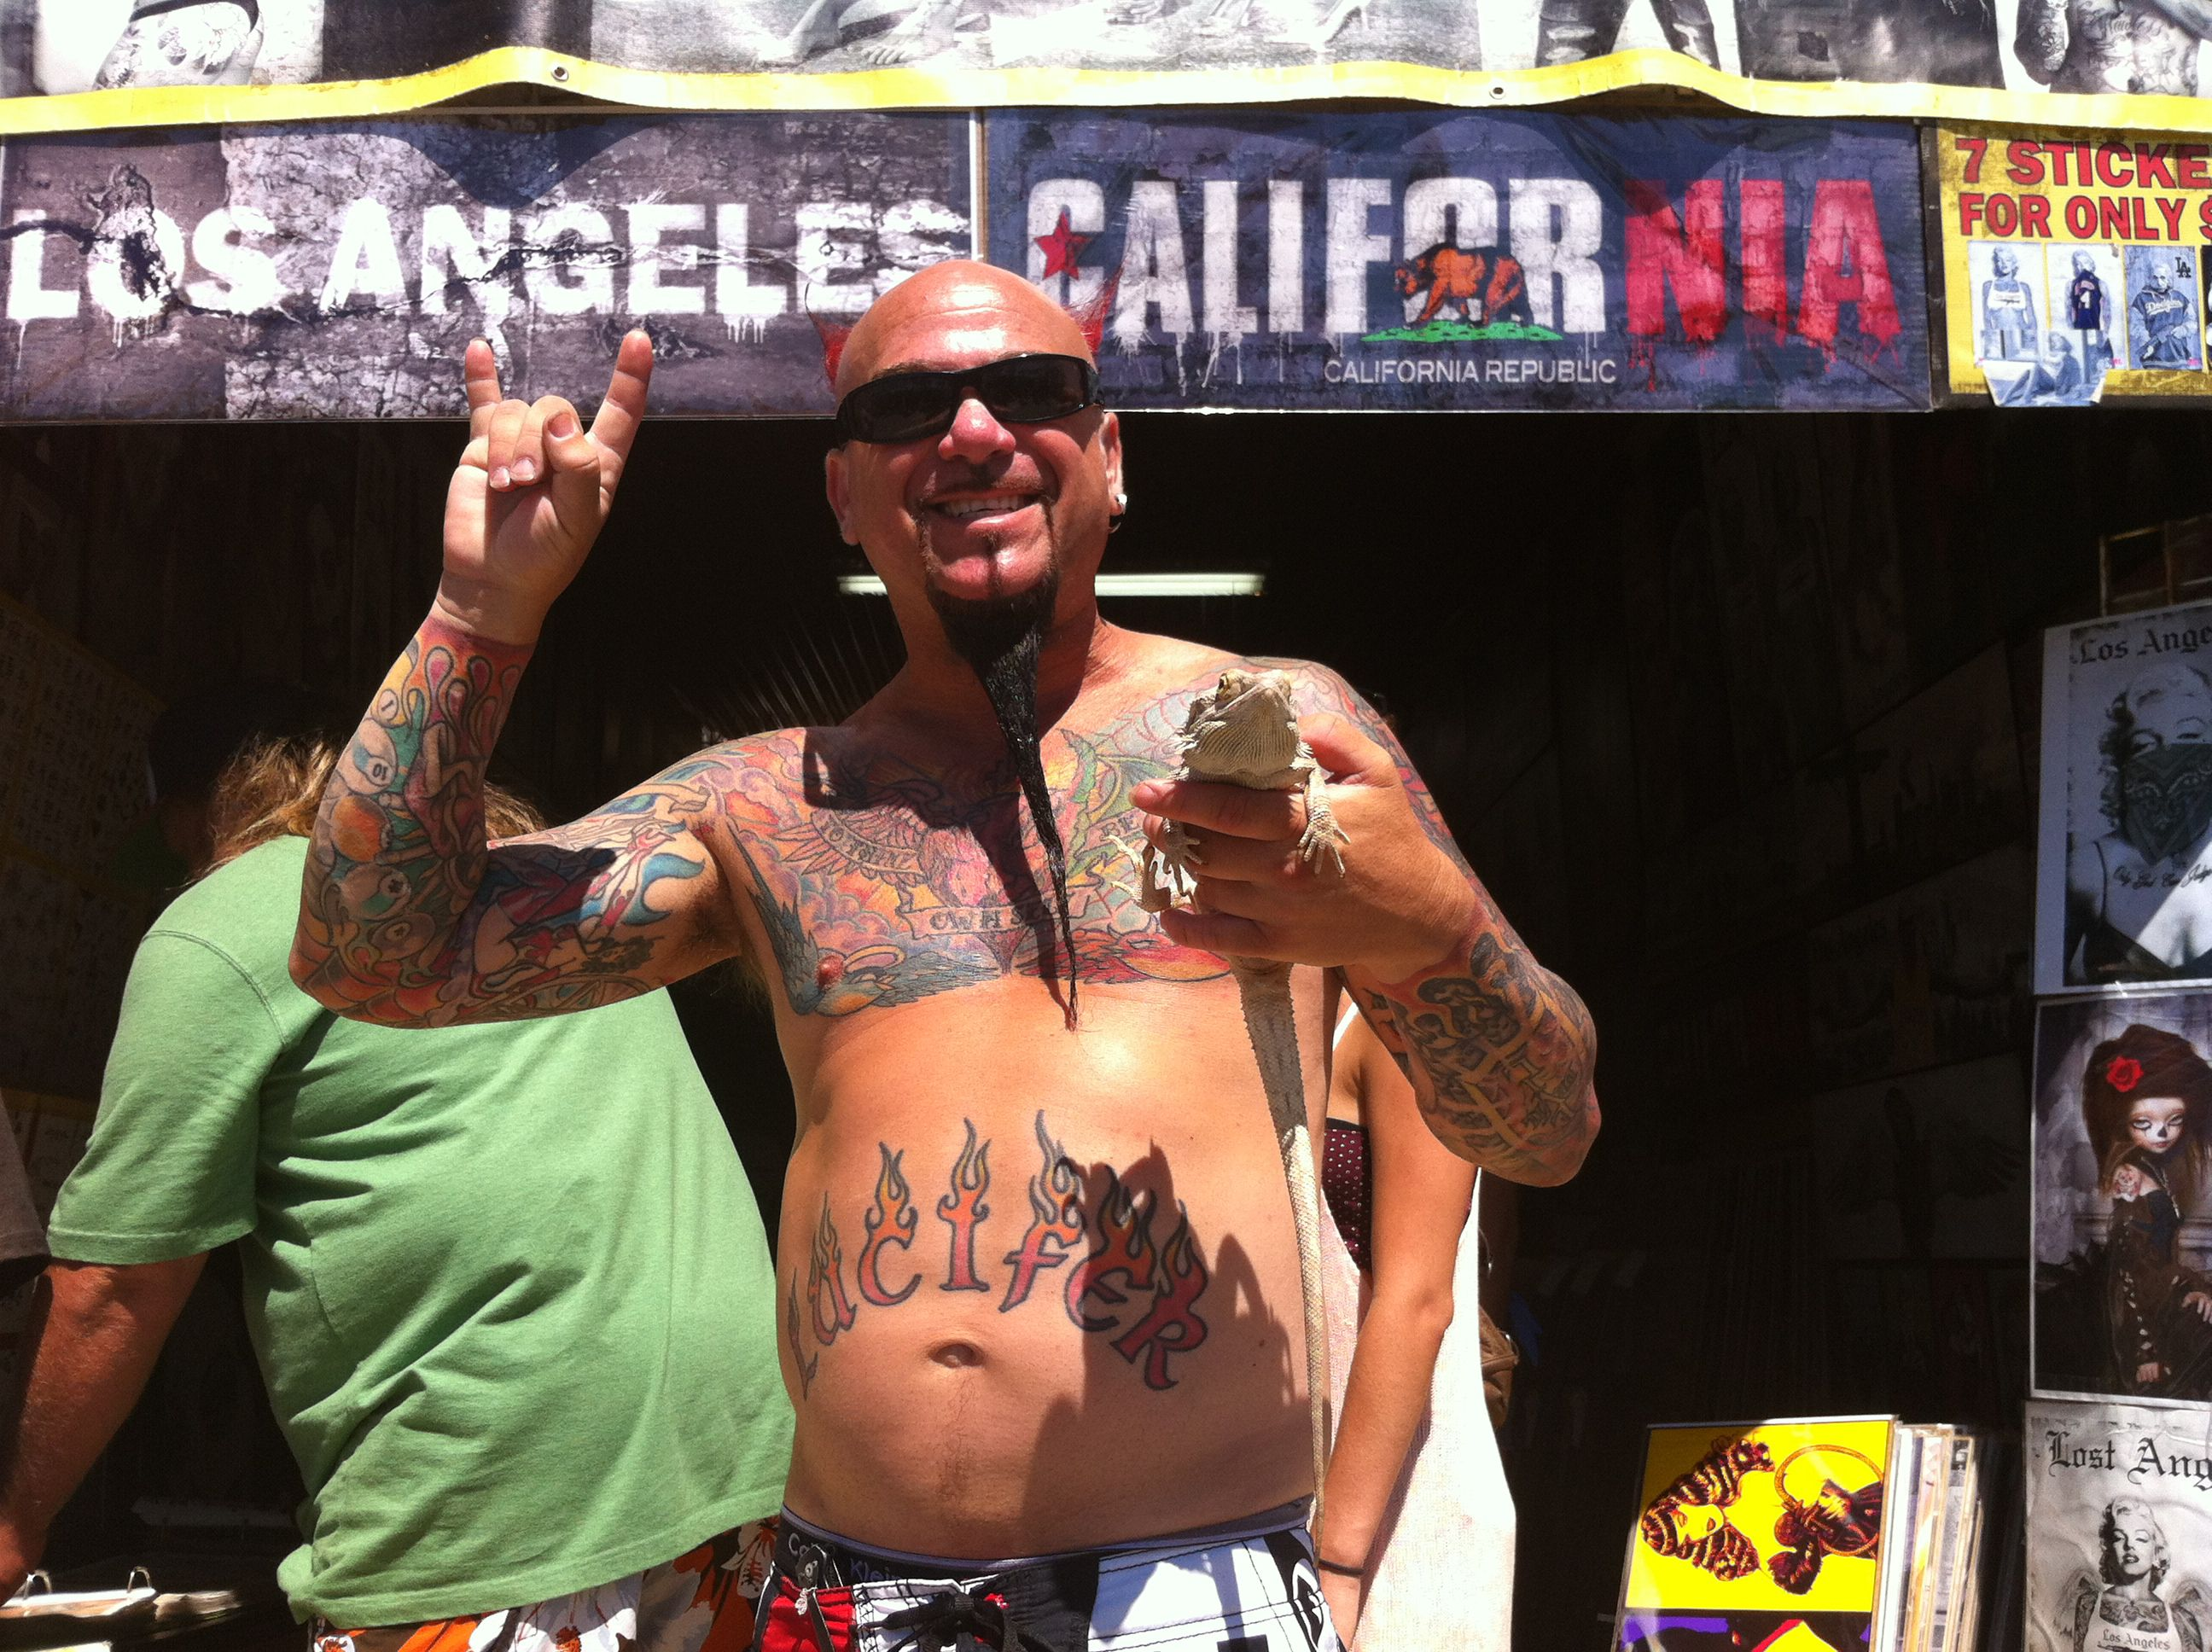 Tattooed man in front of LA banner holding lizard